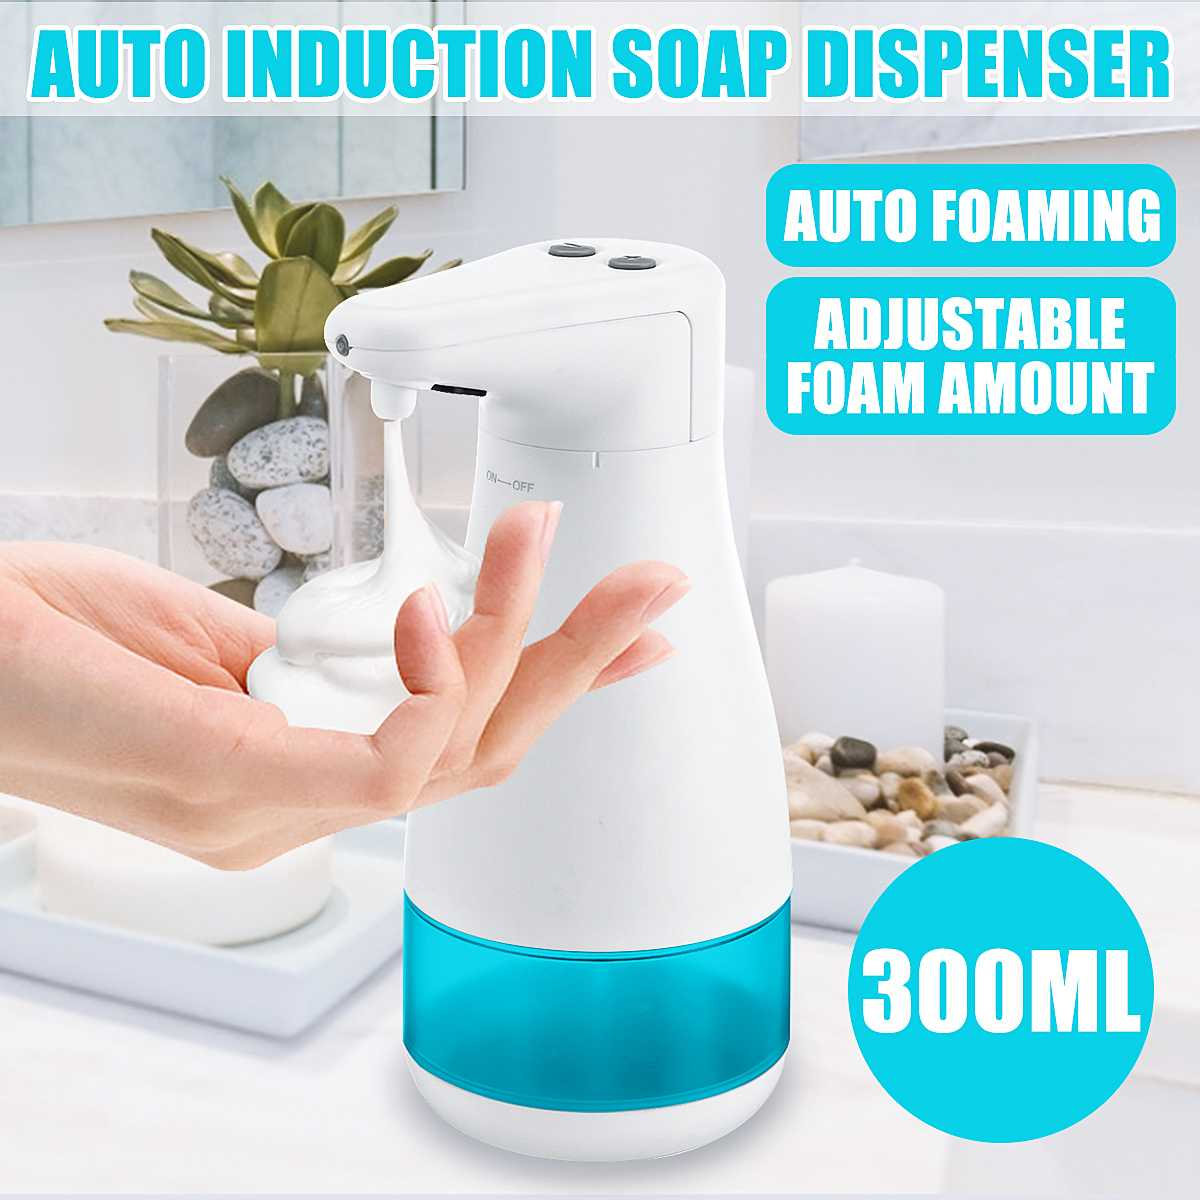 300ml Automatic Liquid Soap Dispenser Smart Transducer Touchless ABS Electroplated Sanitizer Dispensador For Kitchen Bathroom